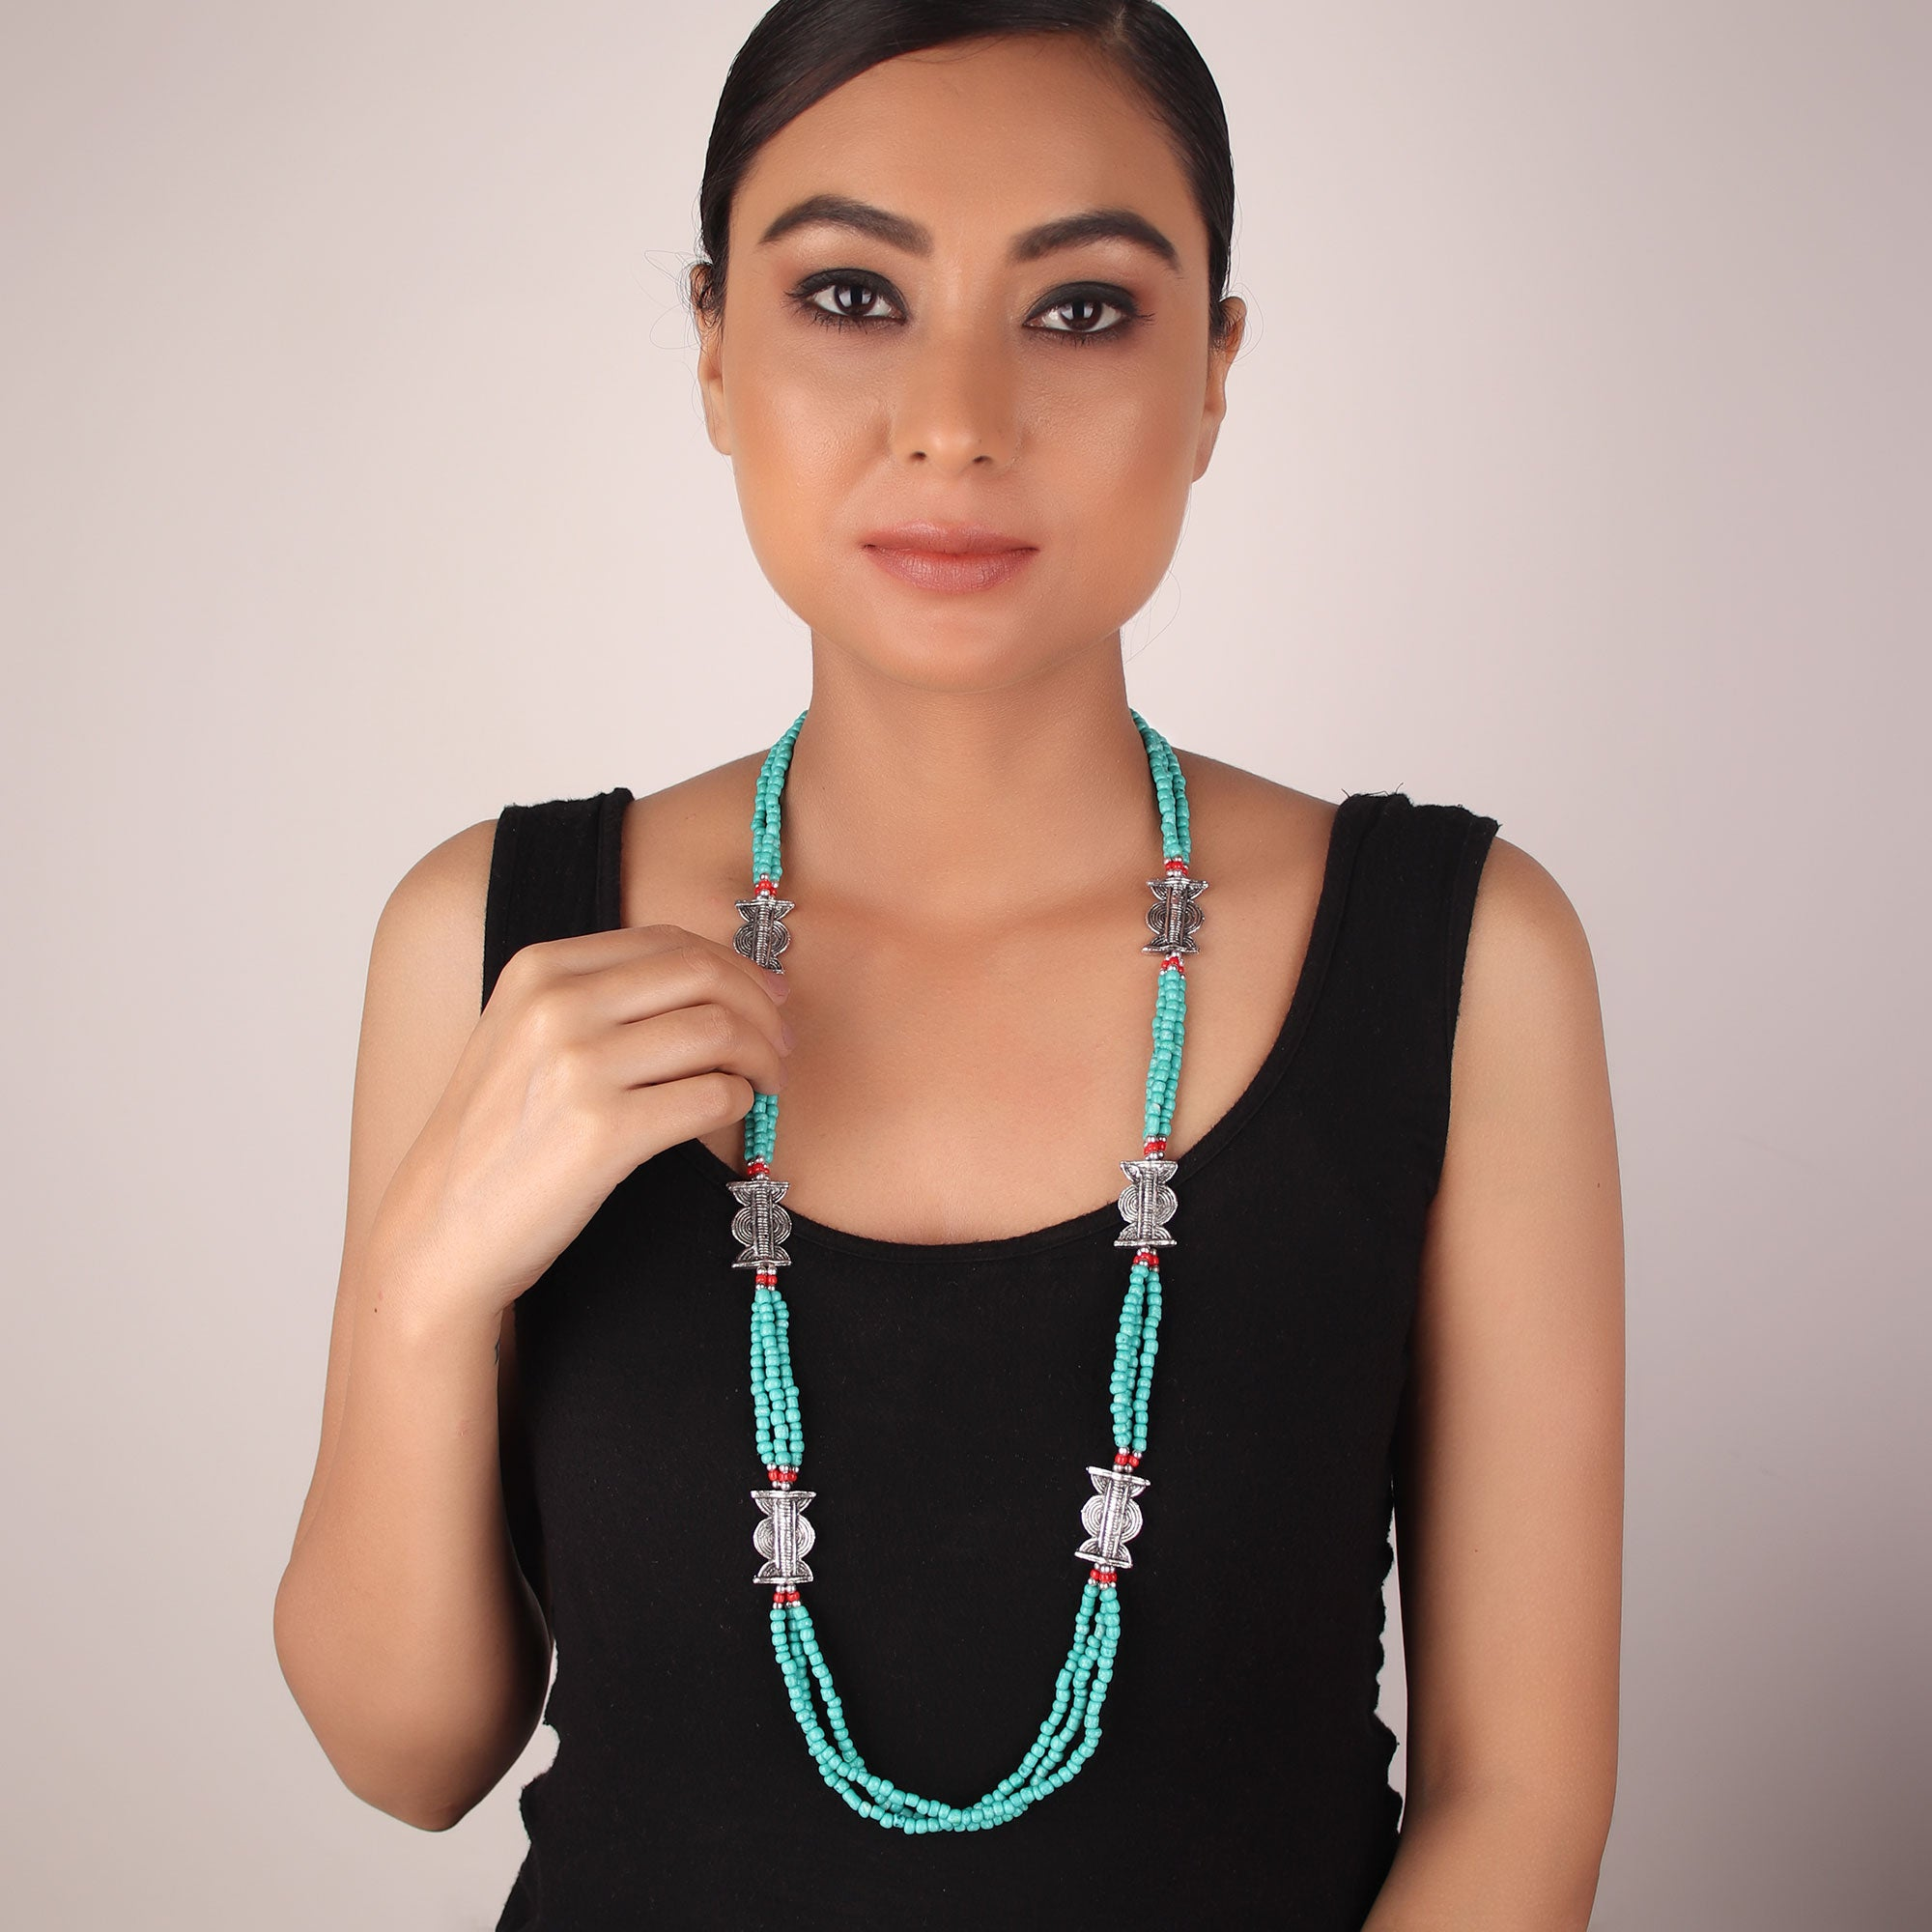 Necklace,The Beaded Lamp Necklace in Green - Cippele Multi Store